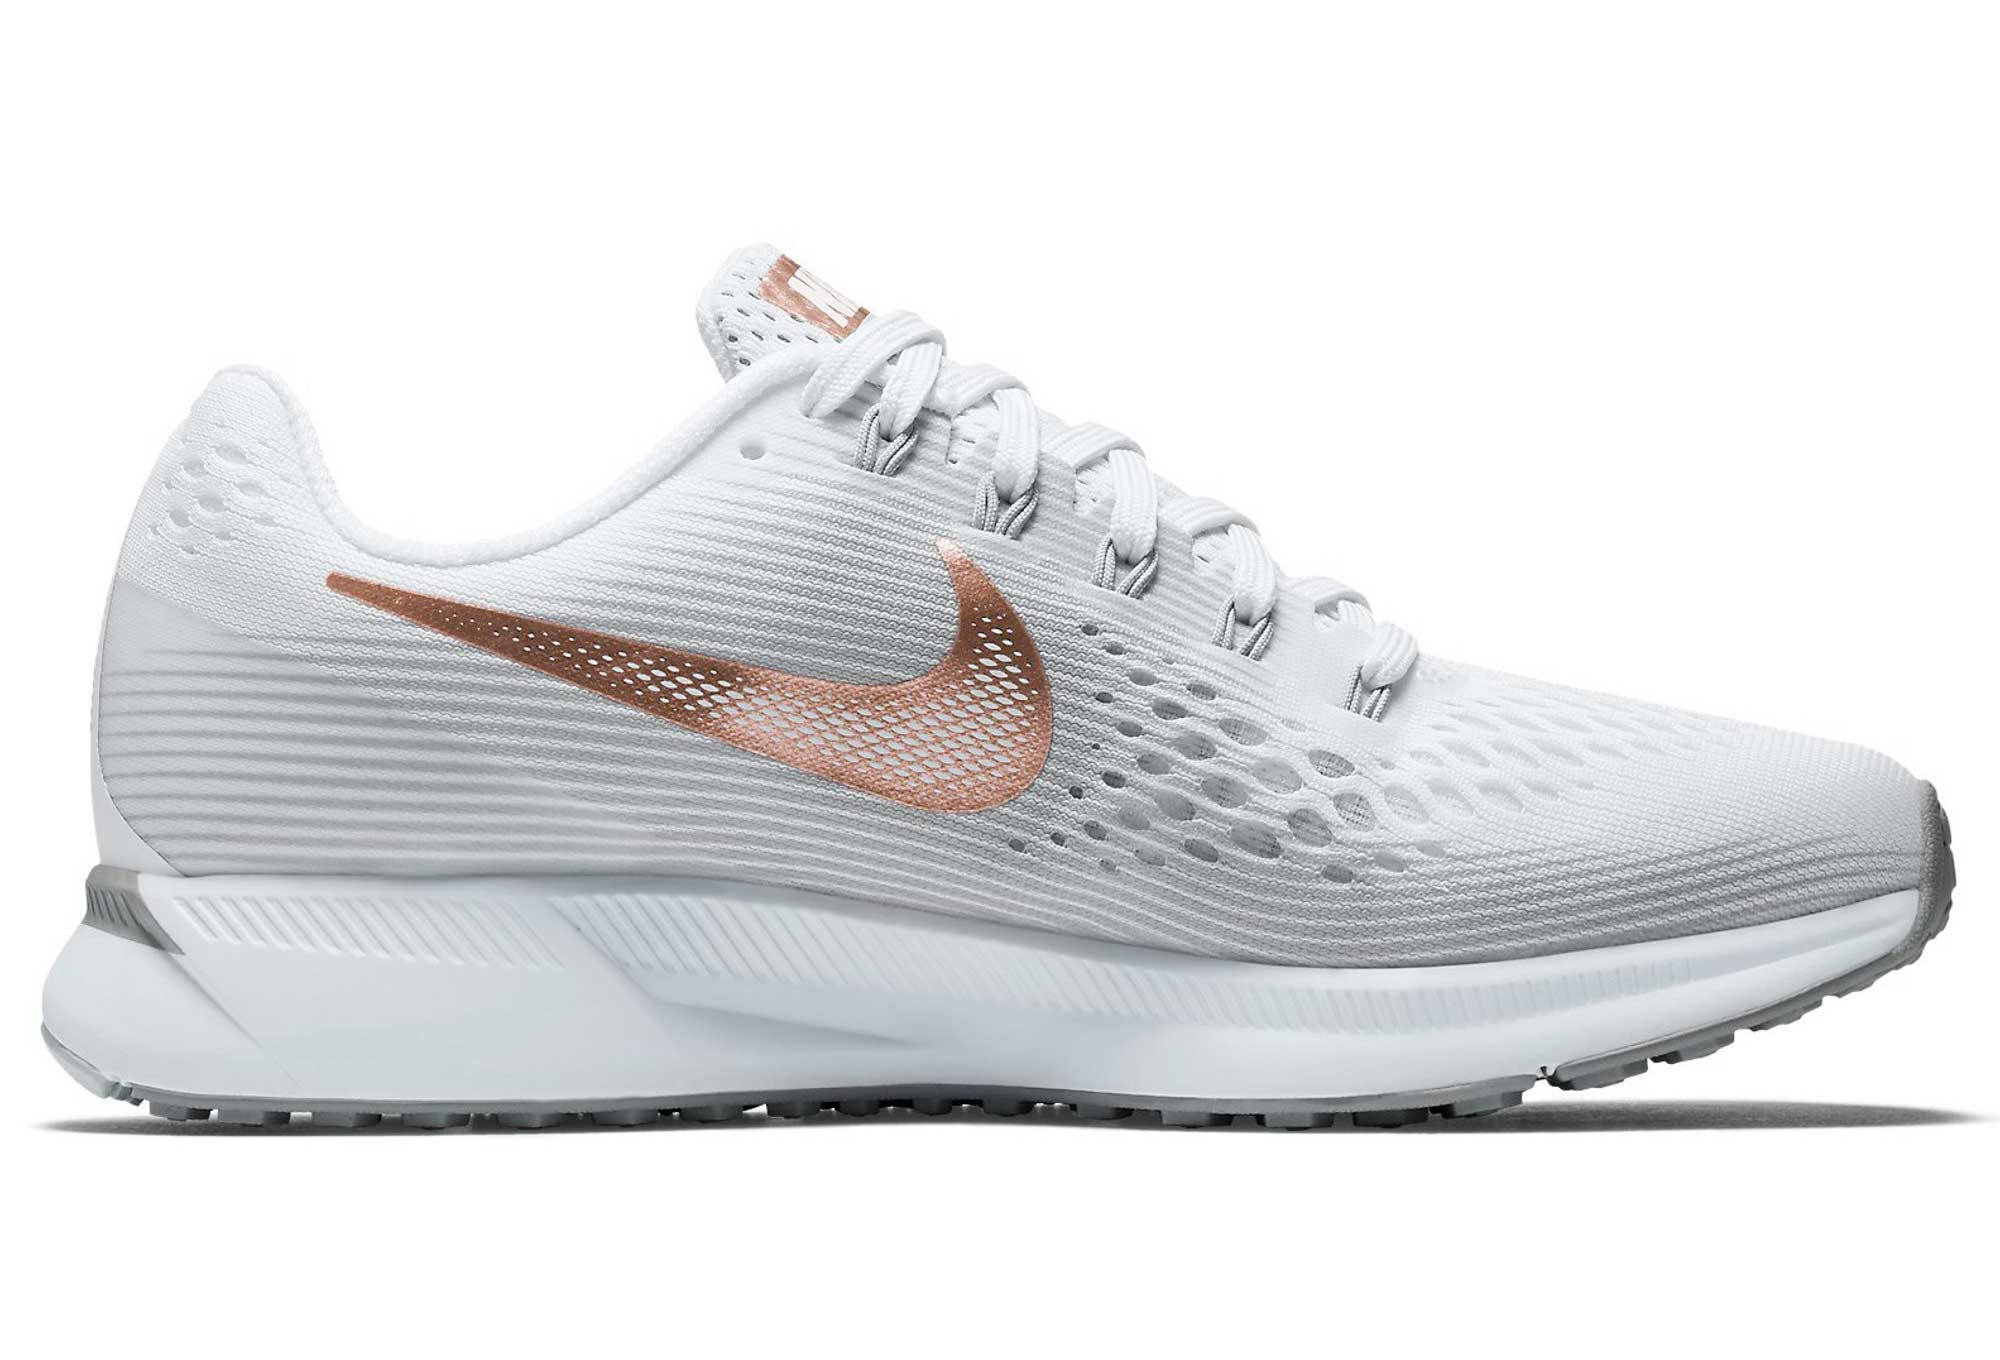 uk availability 4c20e 3407b Chaussures de Running Femme Nike Air Zoom Pegasus 34 Medal Pack Blanc